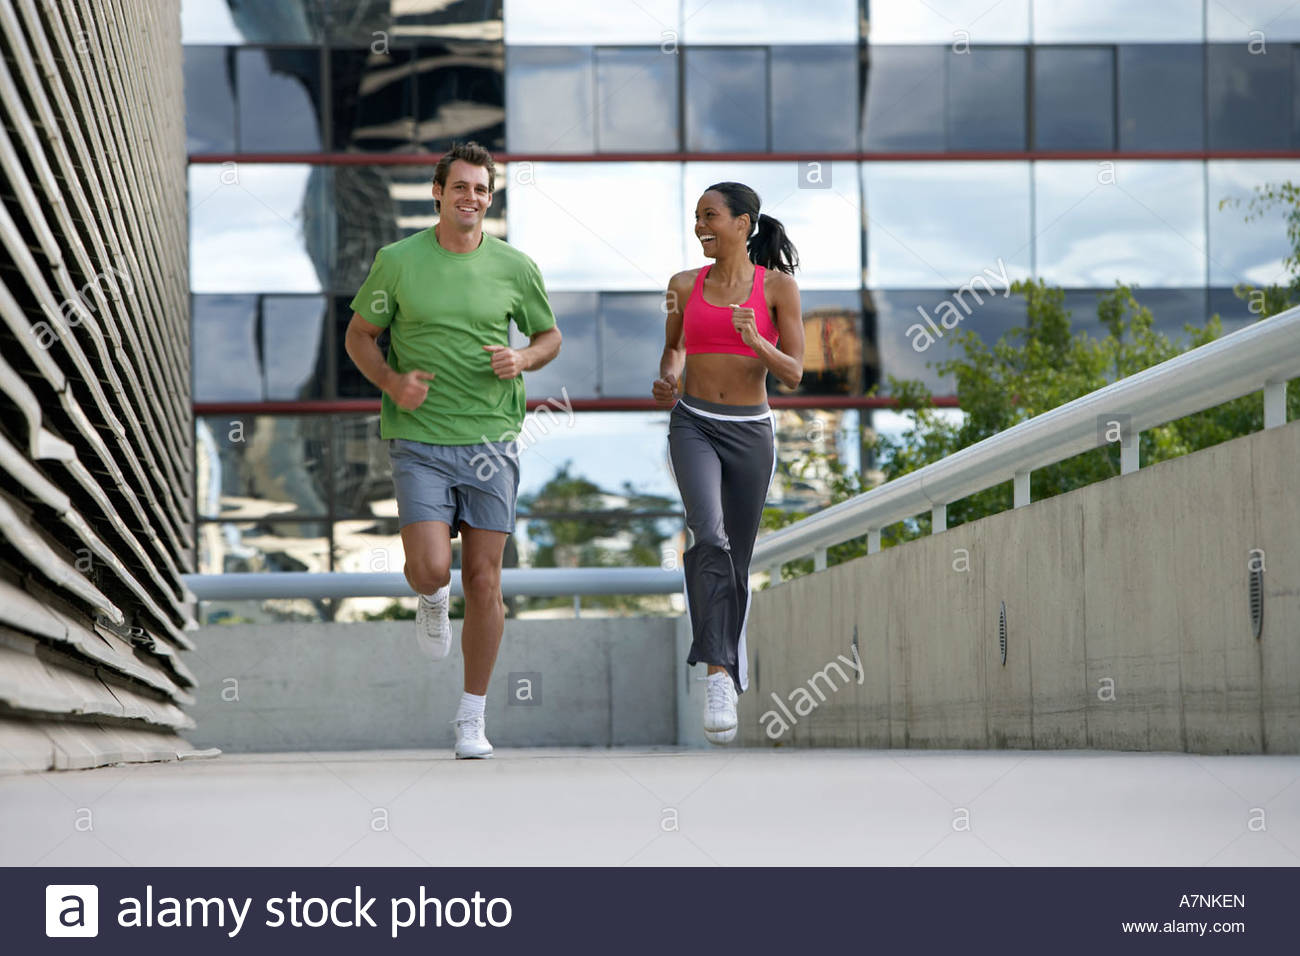 Couple jogging on urban elevated walkway running side by side smiling front view surface level - Stock Image